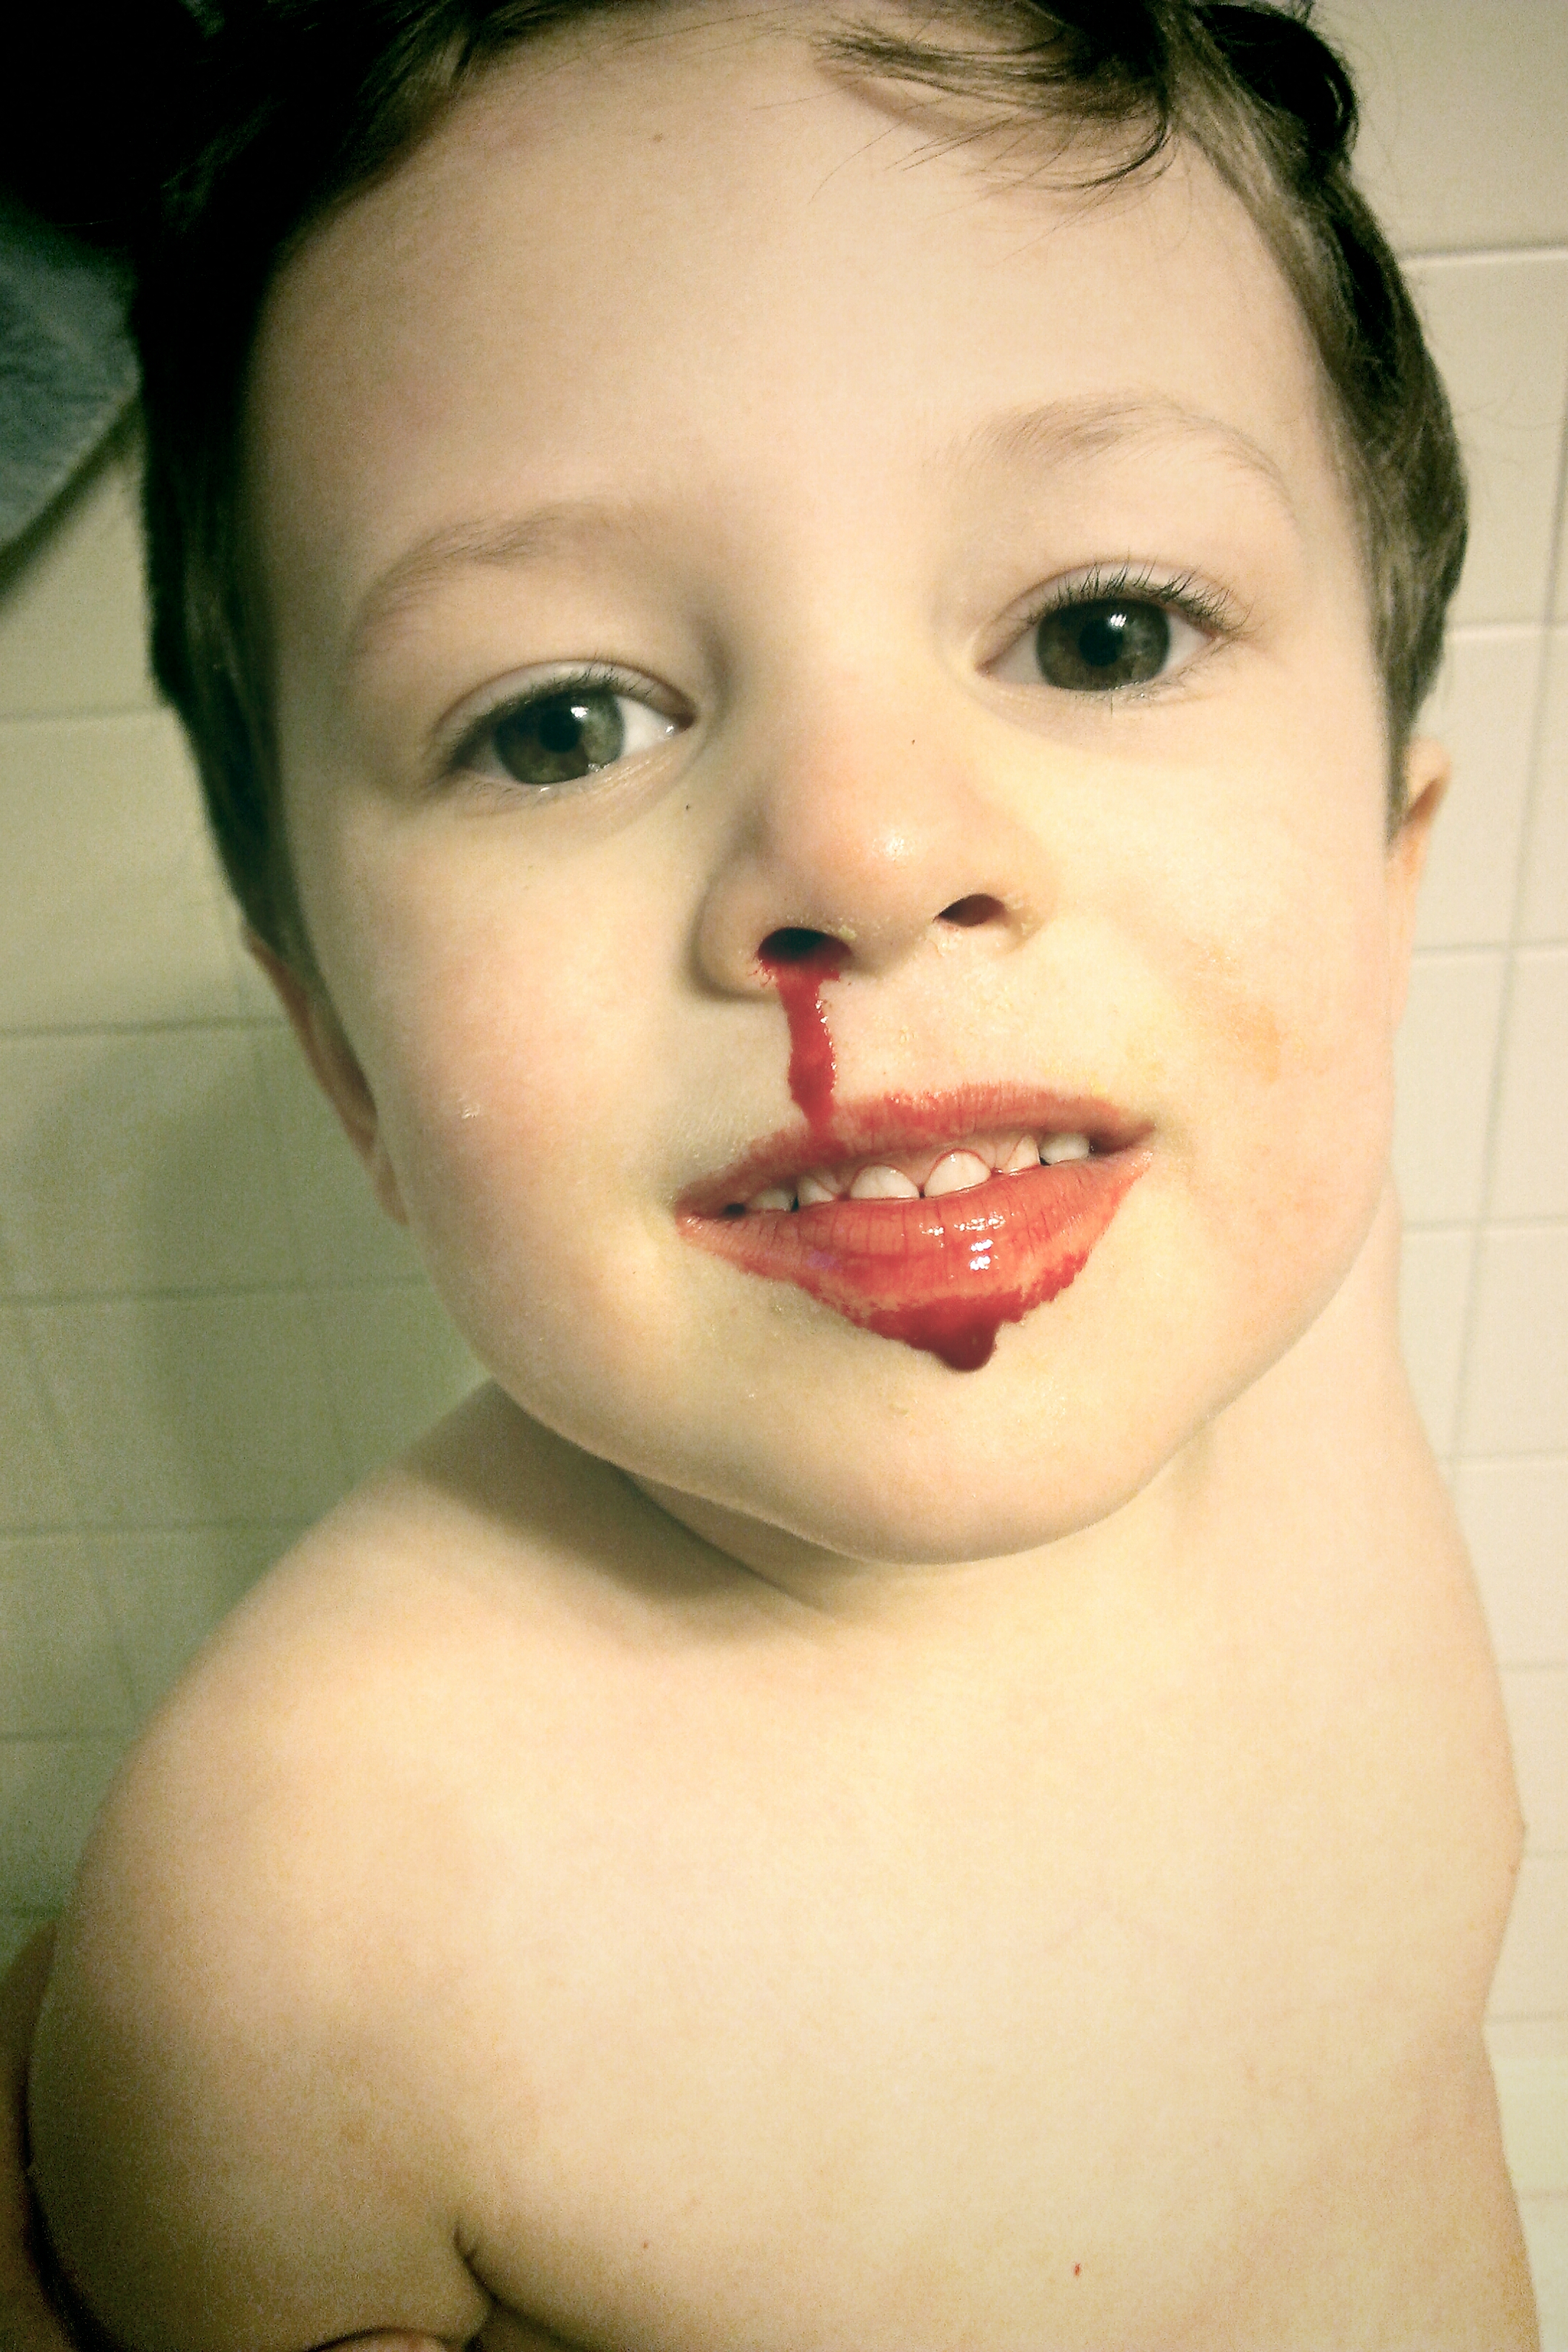 Child with a nosebleed (courtesy Ragesoss)